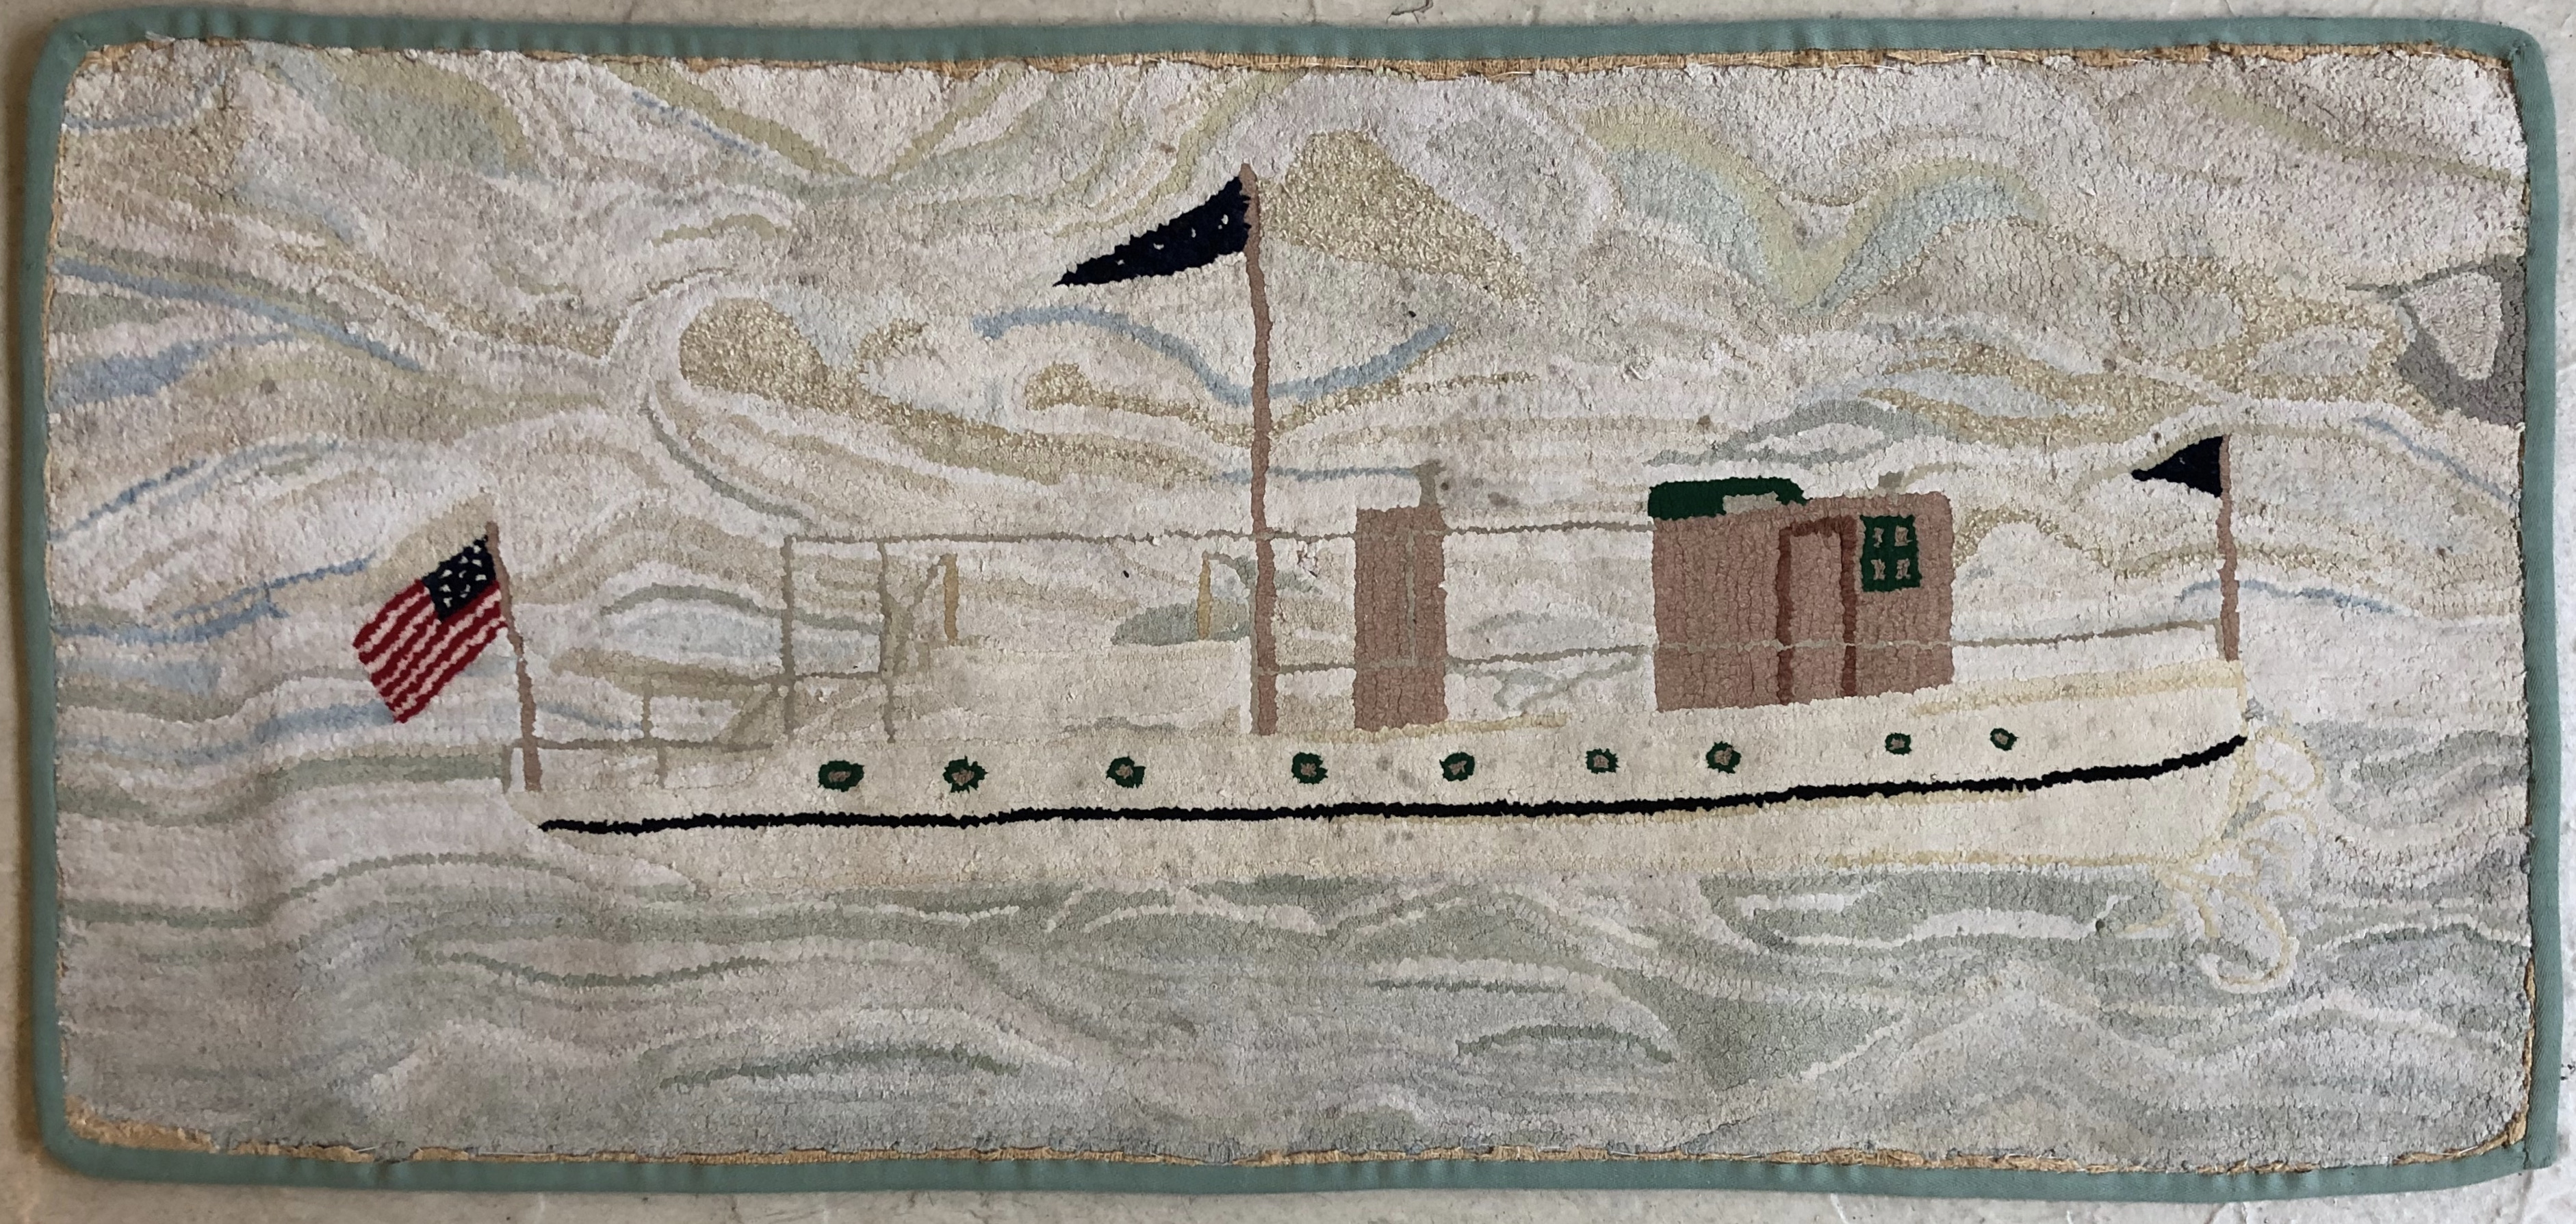 Hooked Rug with Motorboat